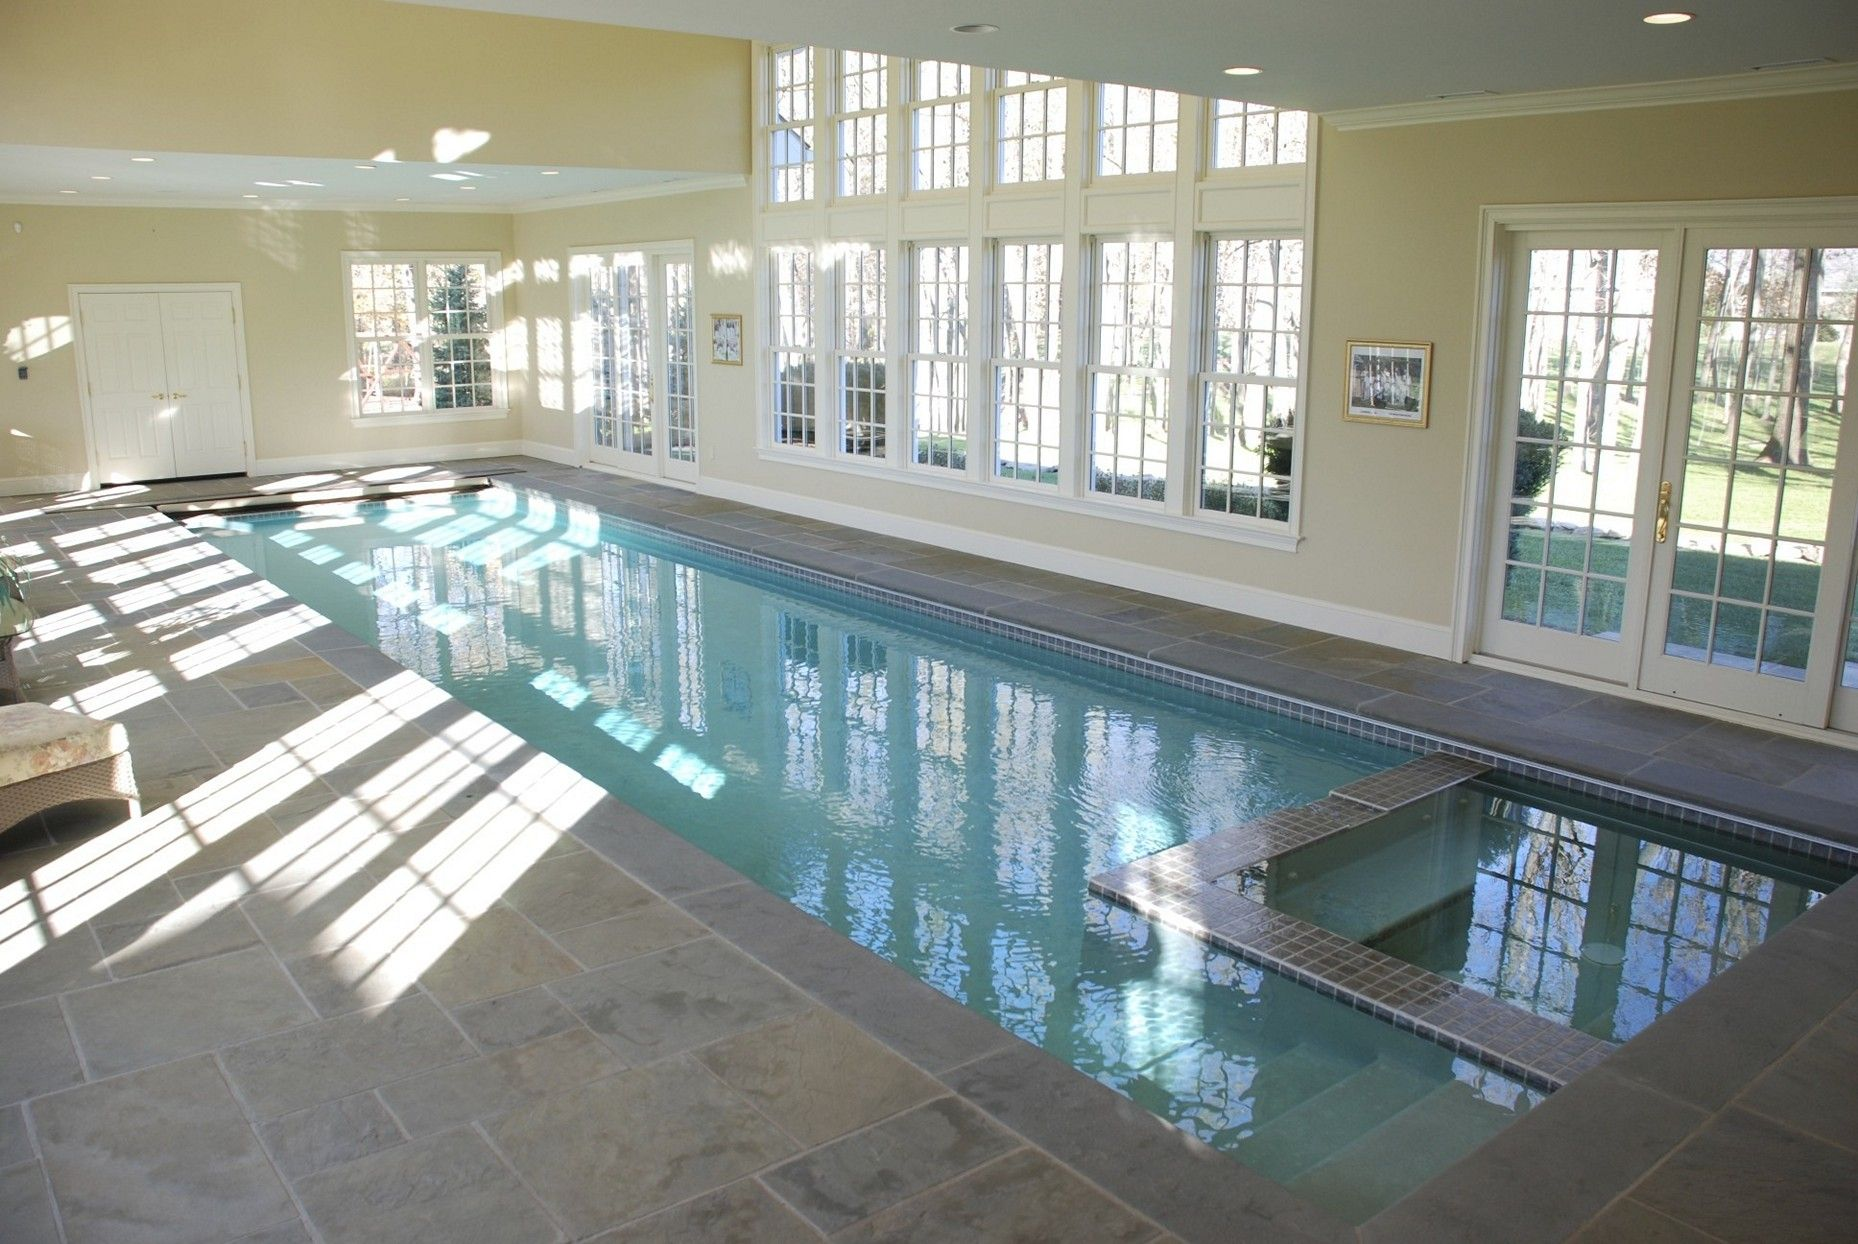 Lap Pool Cost Indoor Lap Pool Dream Home Gym Lap Pool Cost